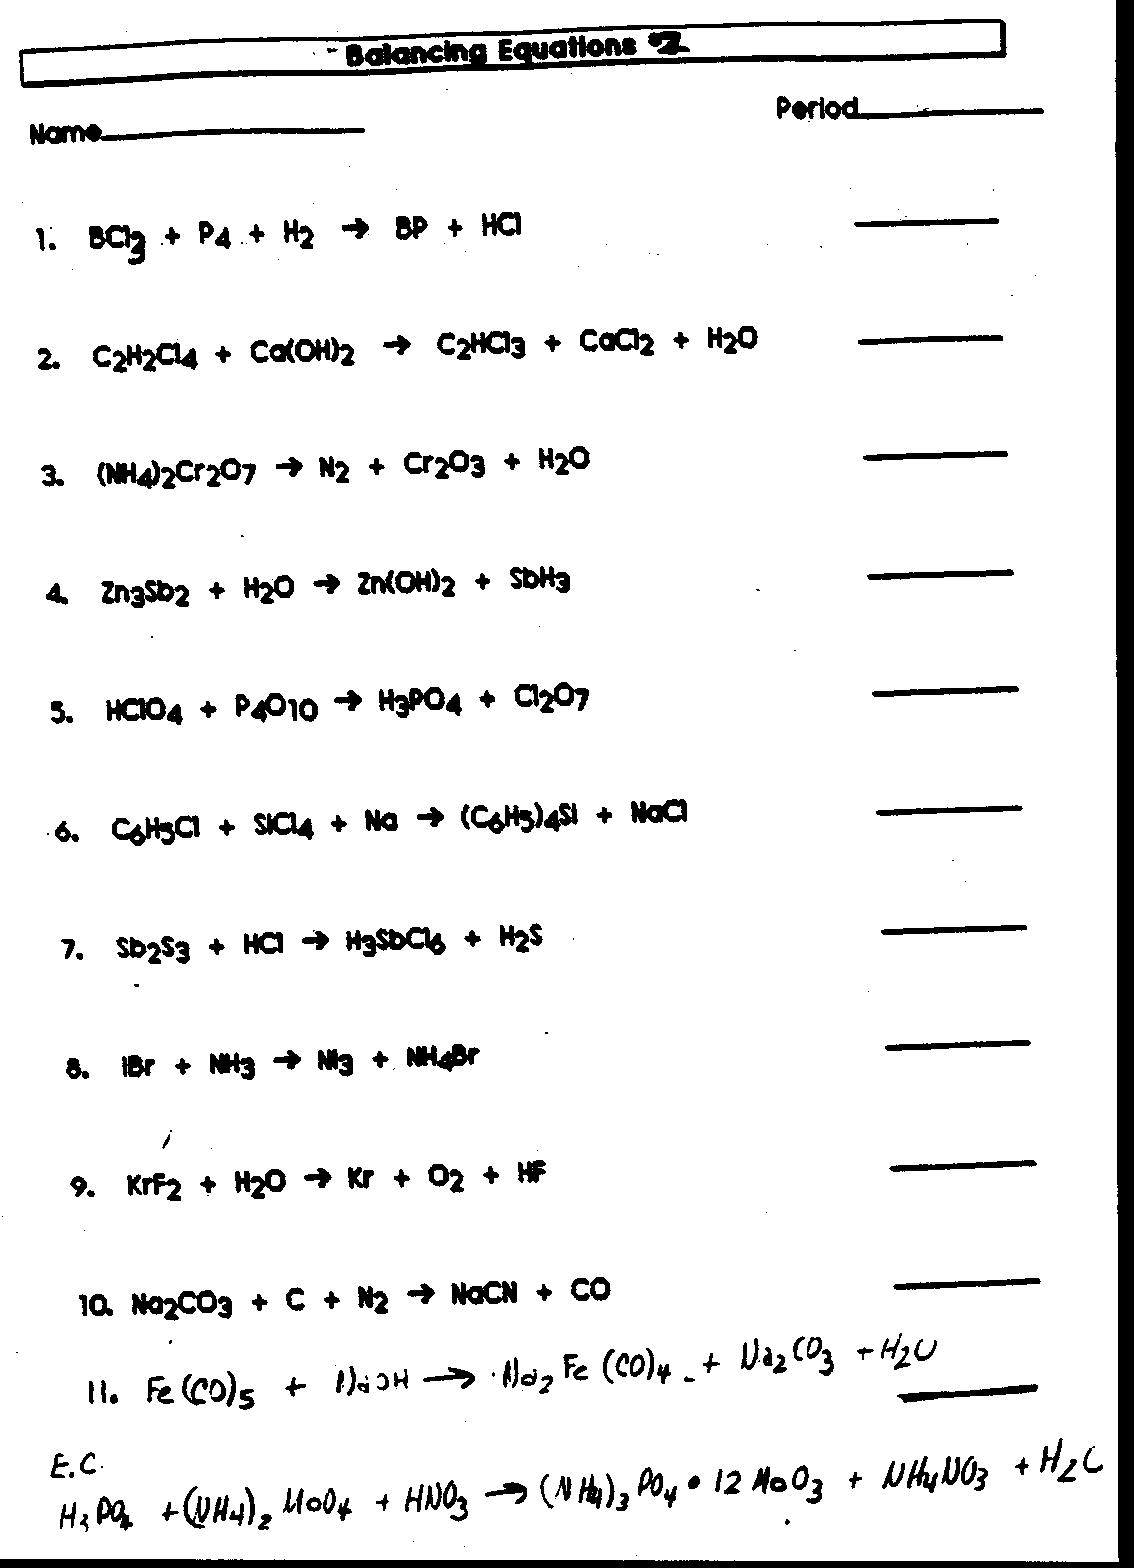 Worksheet Molecular Pounds Answers